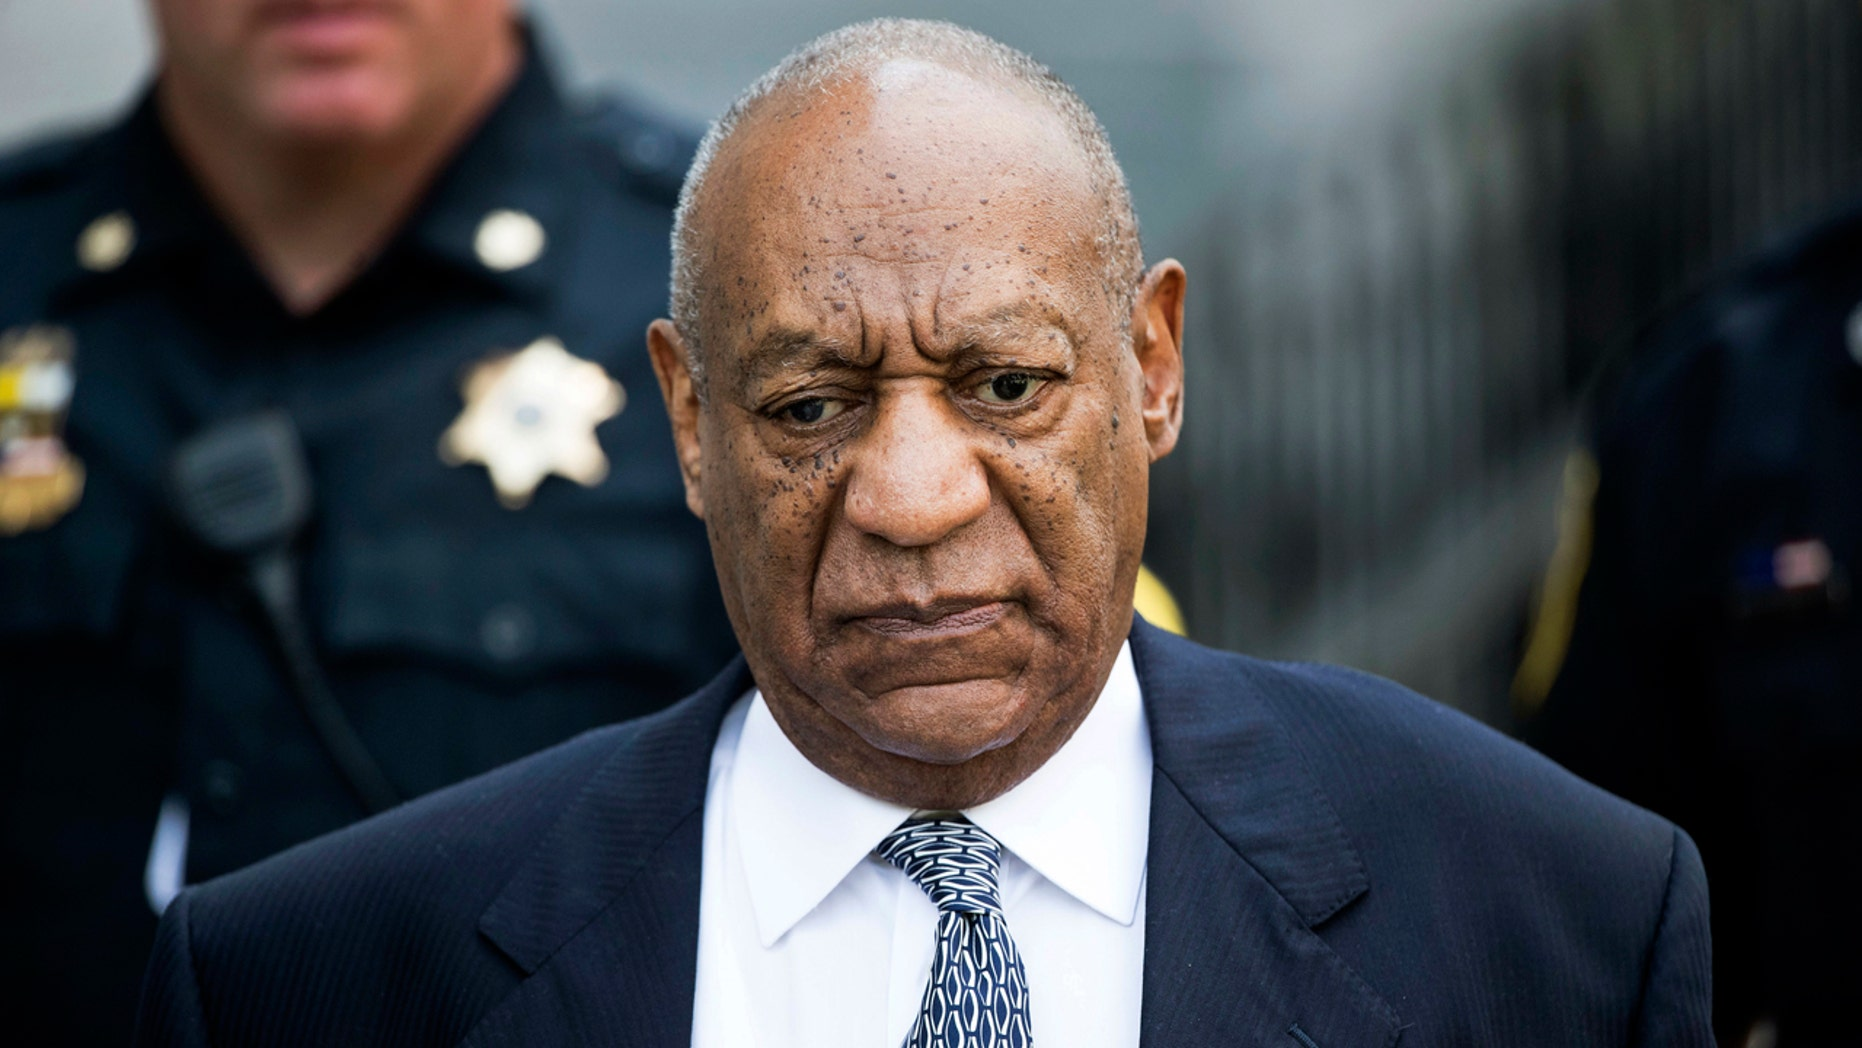 In this Aug. 22, 2017, file photo, Bill Cosby leaves Montgomery County Courthouse after a hearing in his sexual assault case in Norristown, Pa.